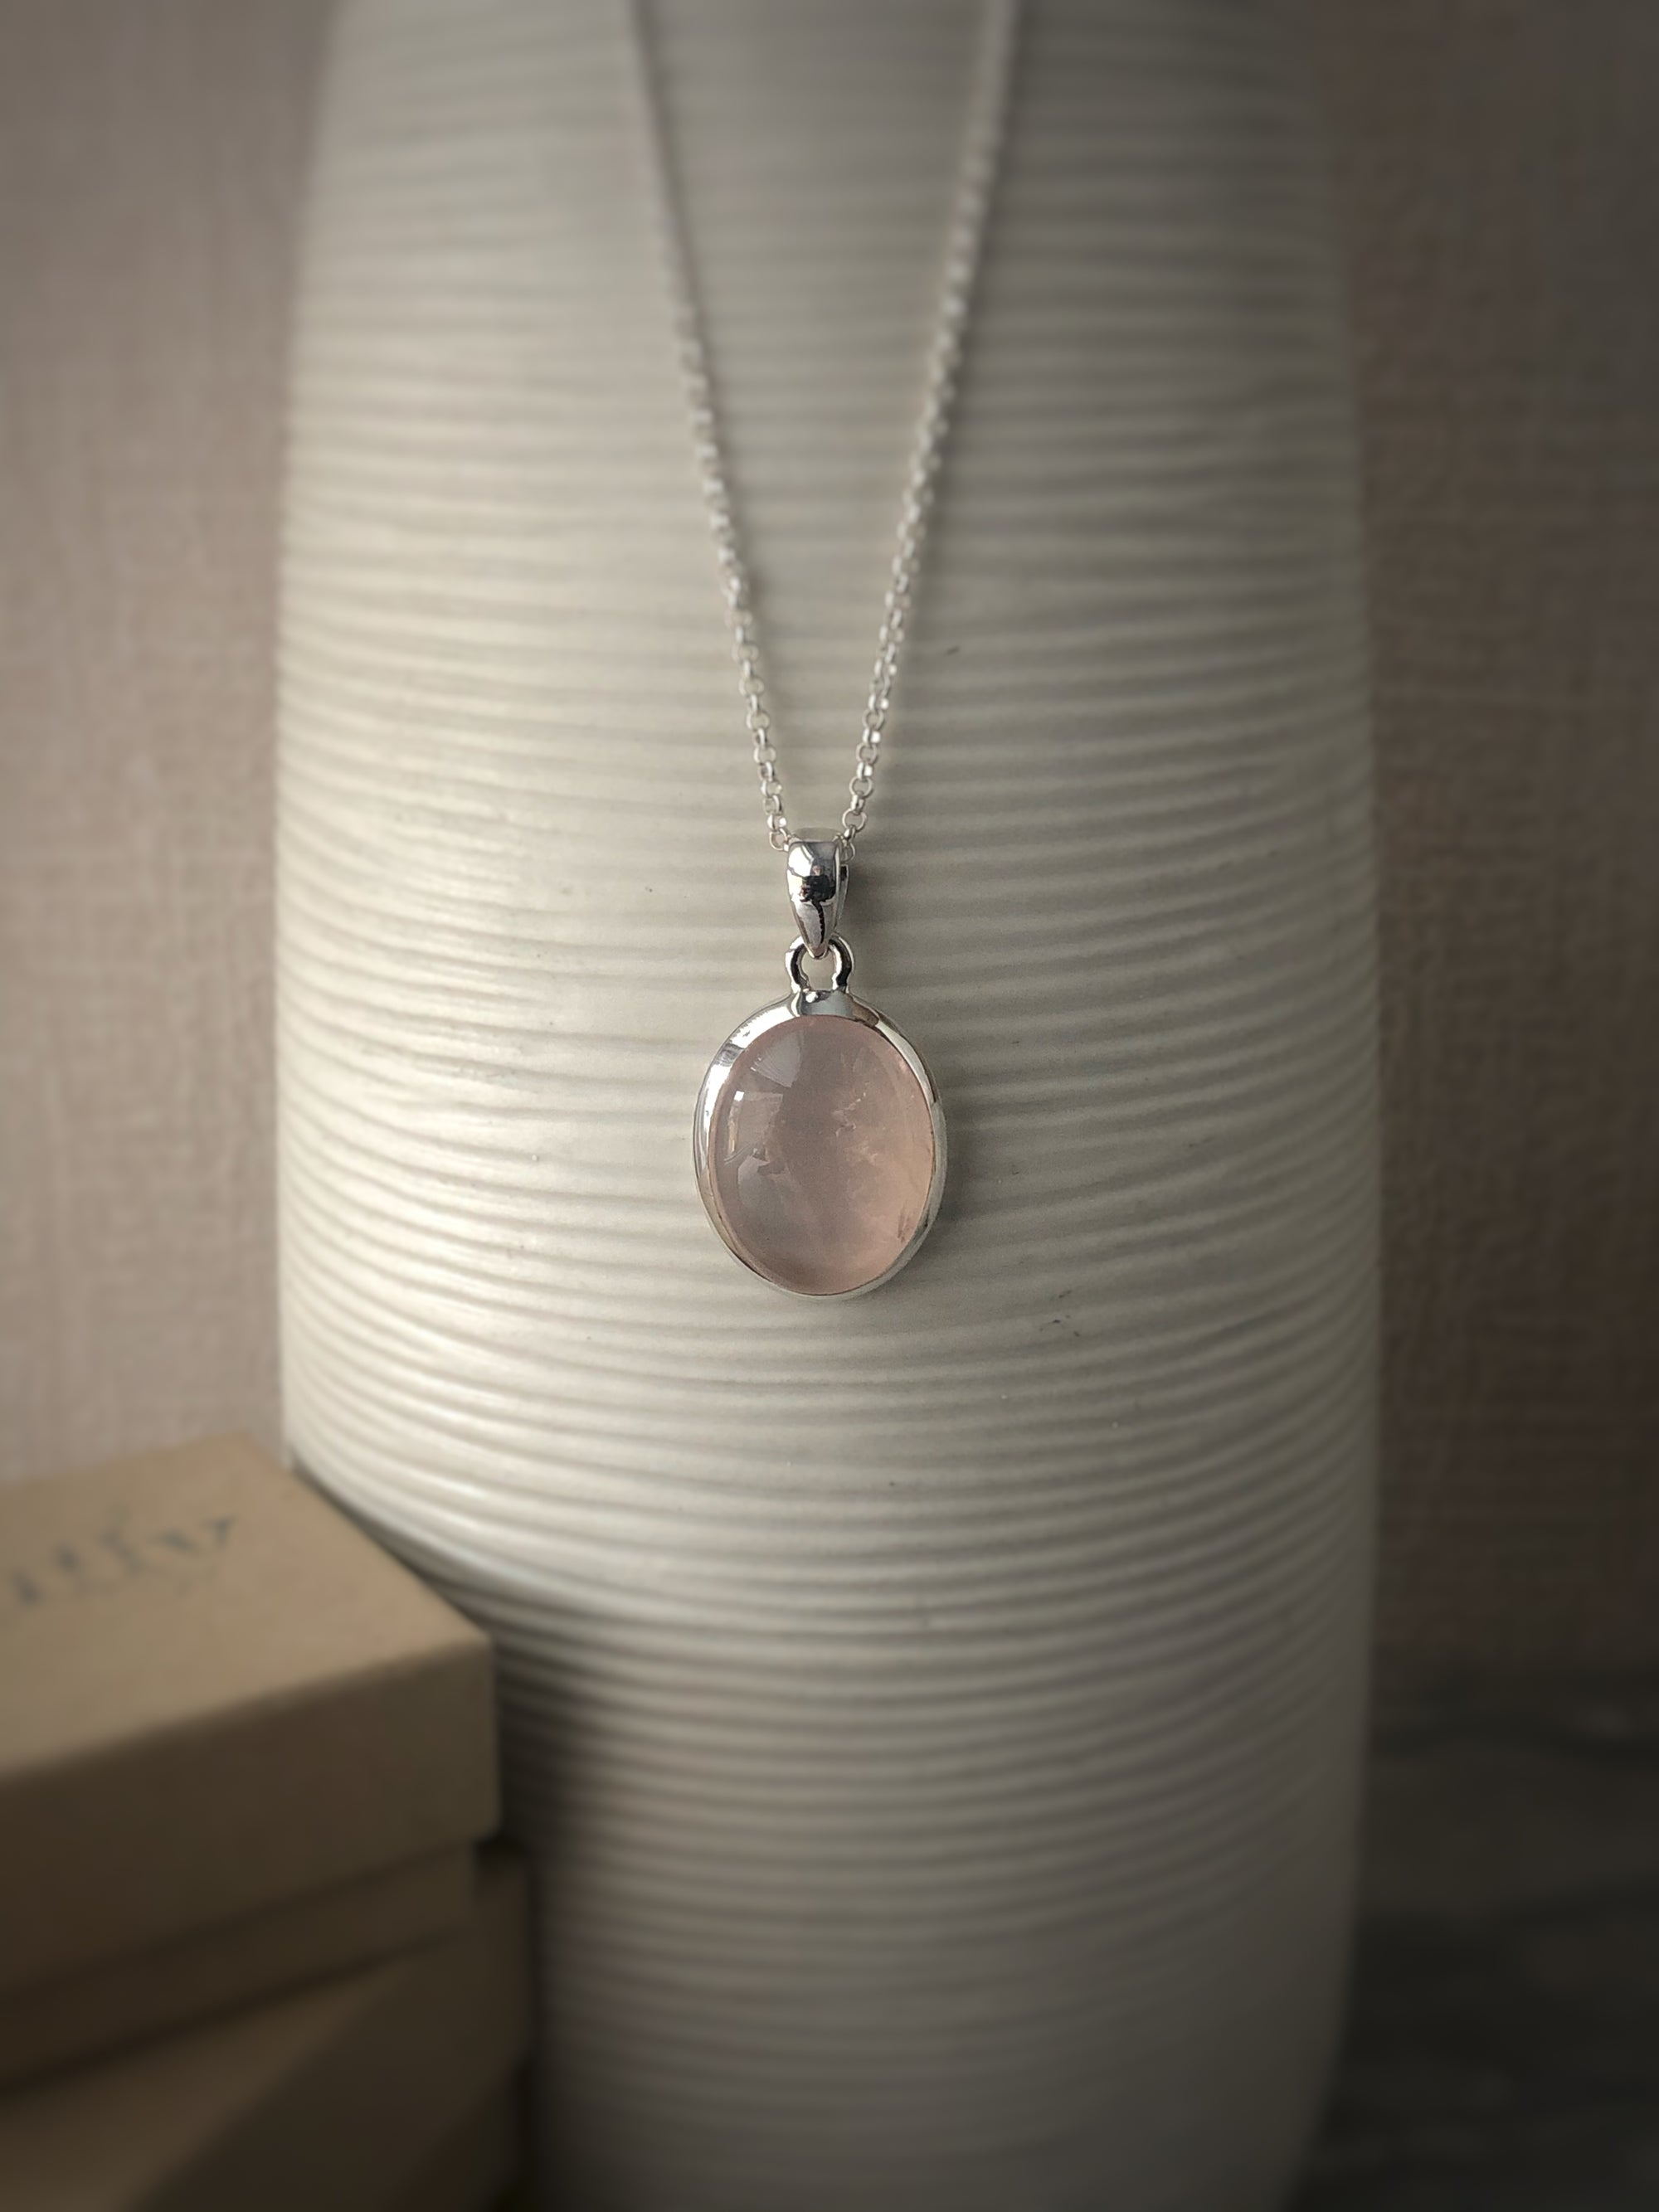 Small Rose Quartz Sterling Silver Pendant Necklace Tiger Lily London